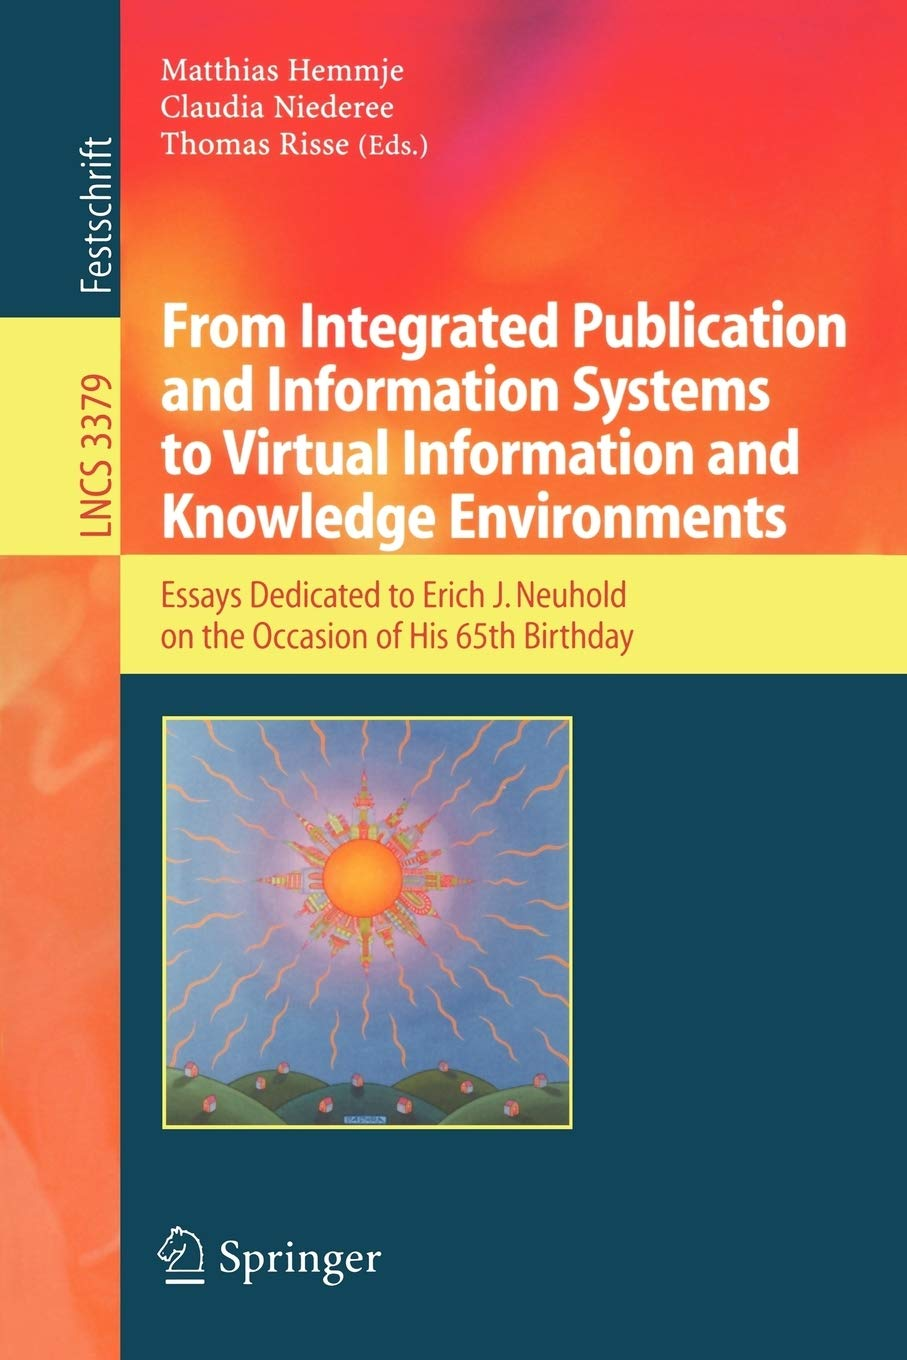 From Integrated Publication and Information Systems to Information ...